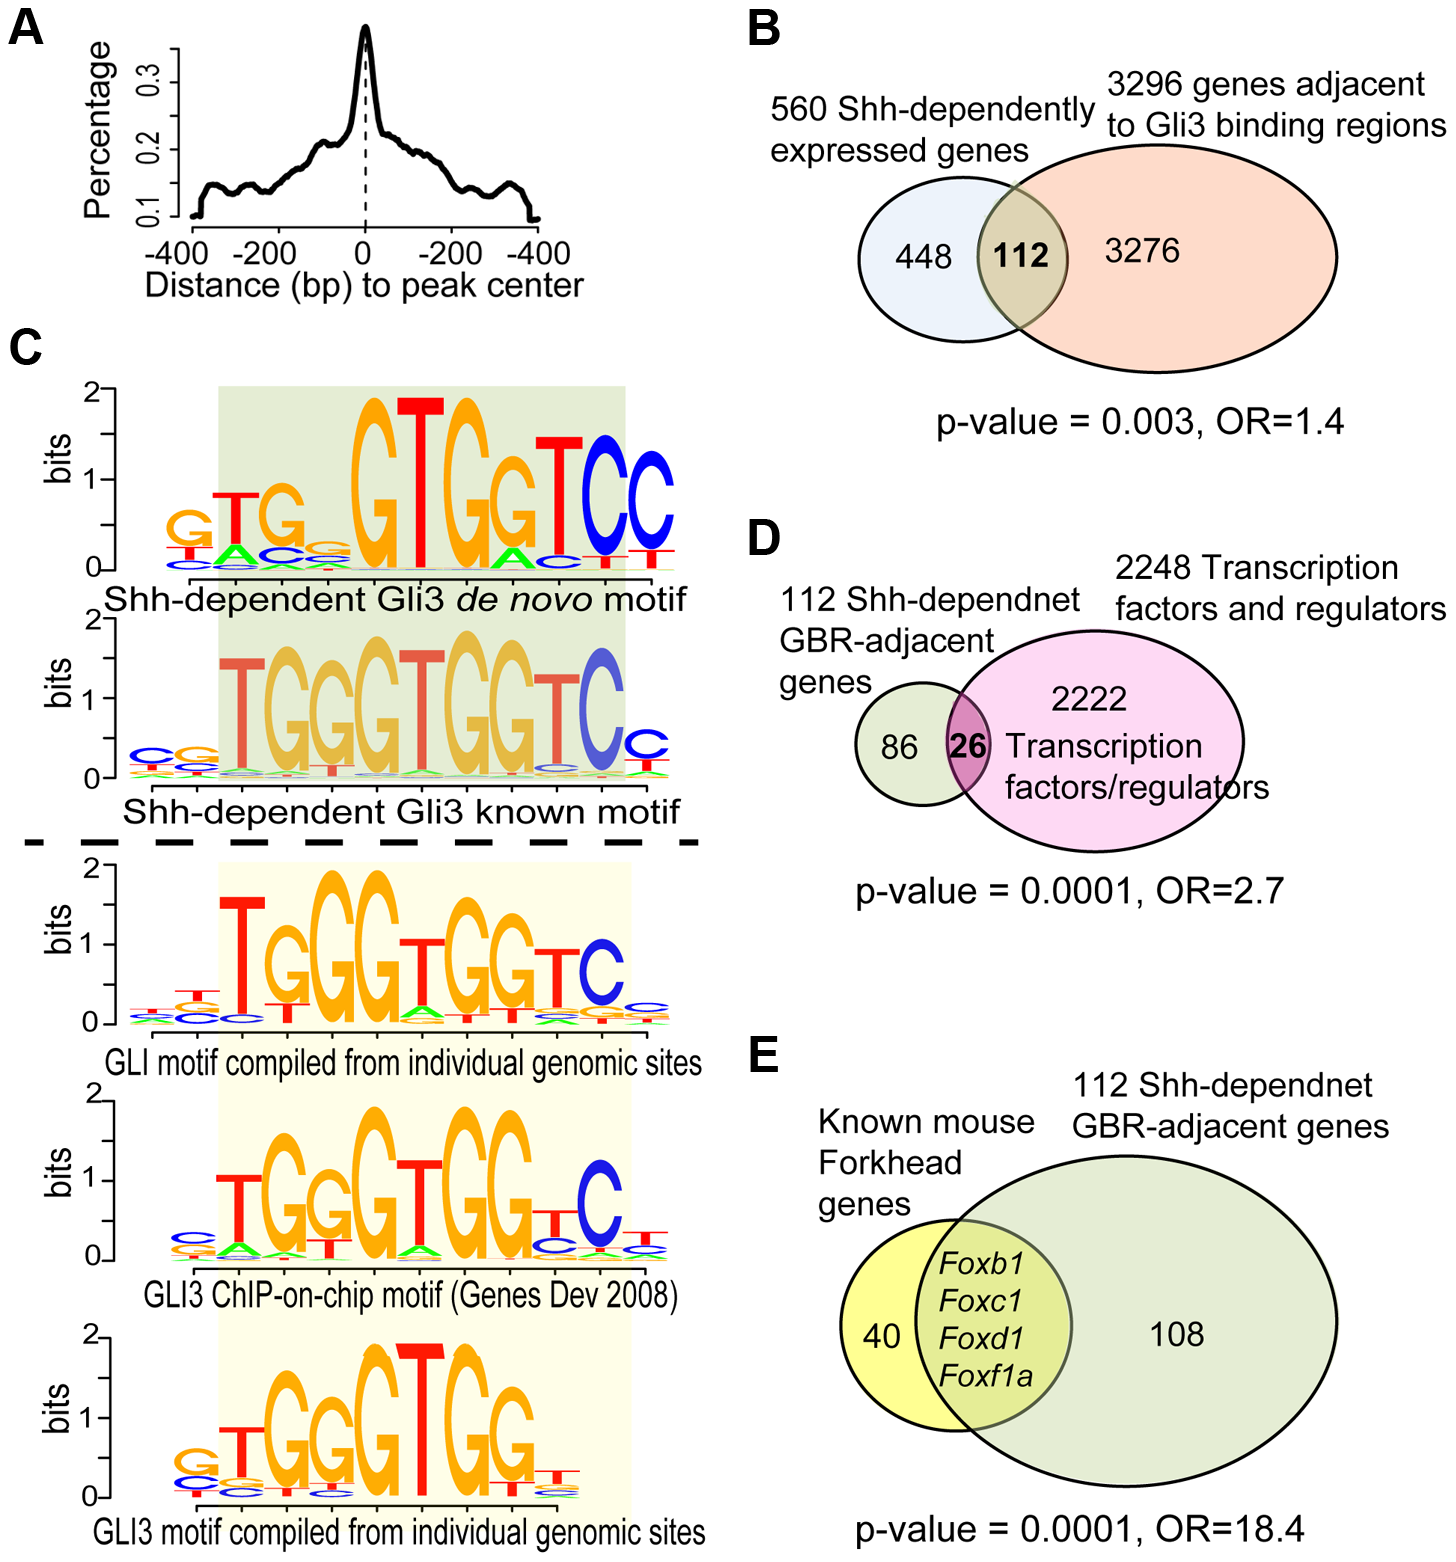 Analysis of ChIP-Seq data and its intersection with transcriptional profiling data.